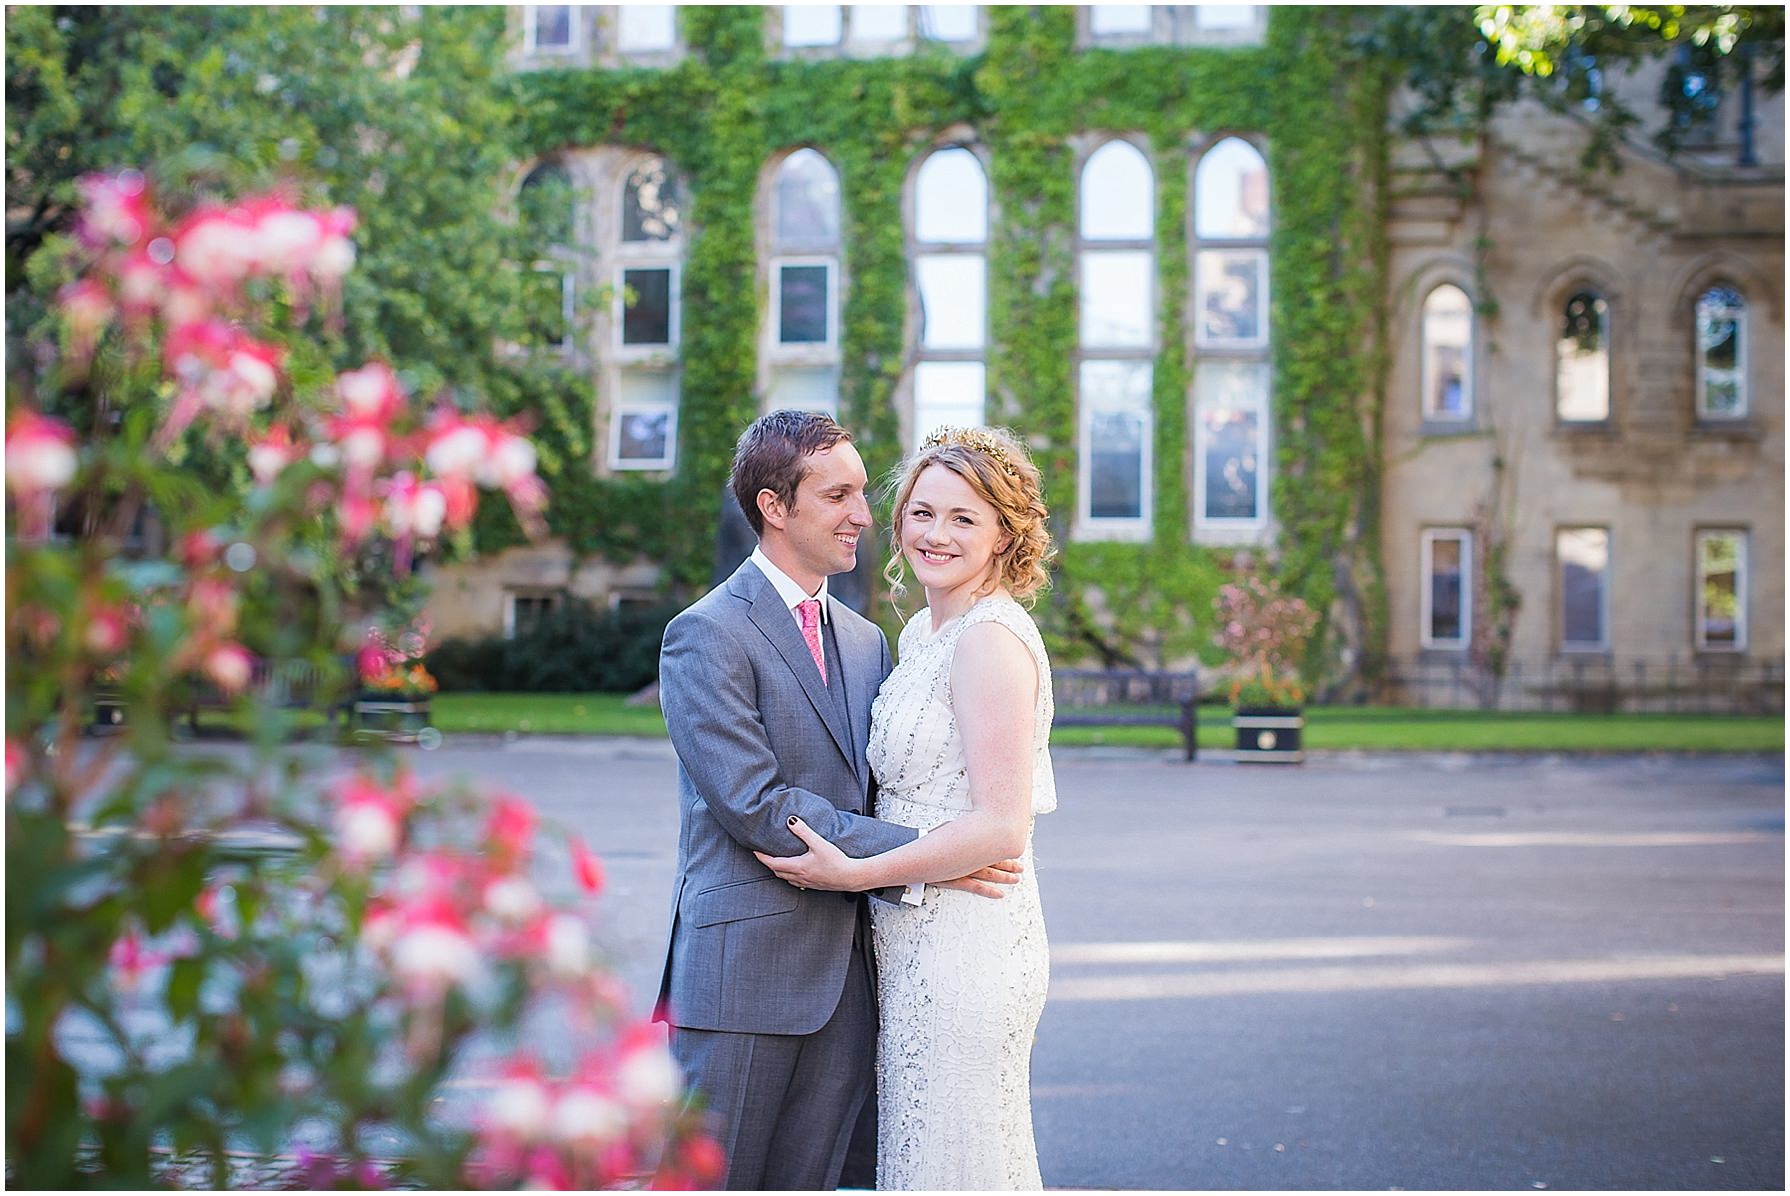 Manchester Museum wedding photography portrait in courtyard